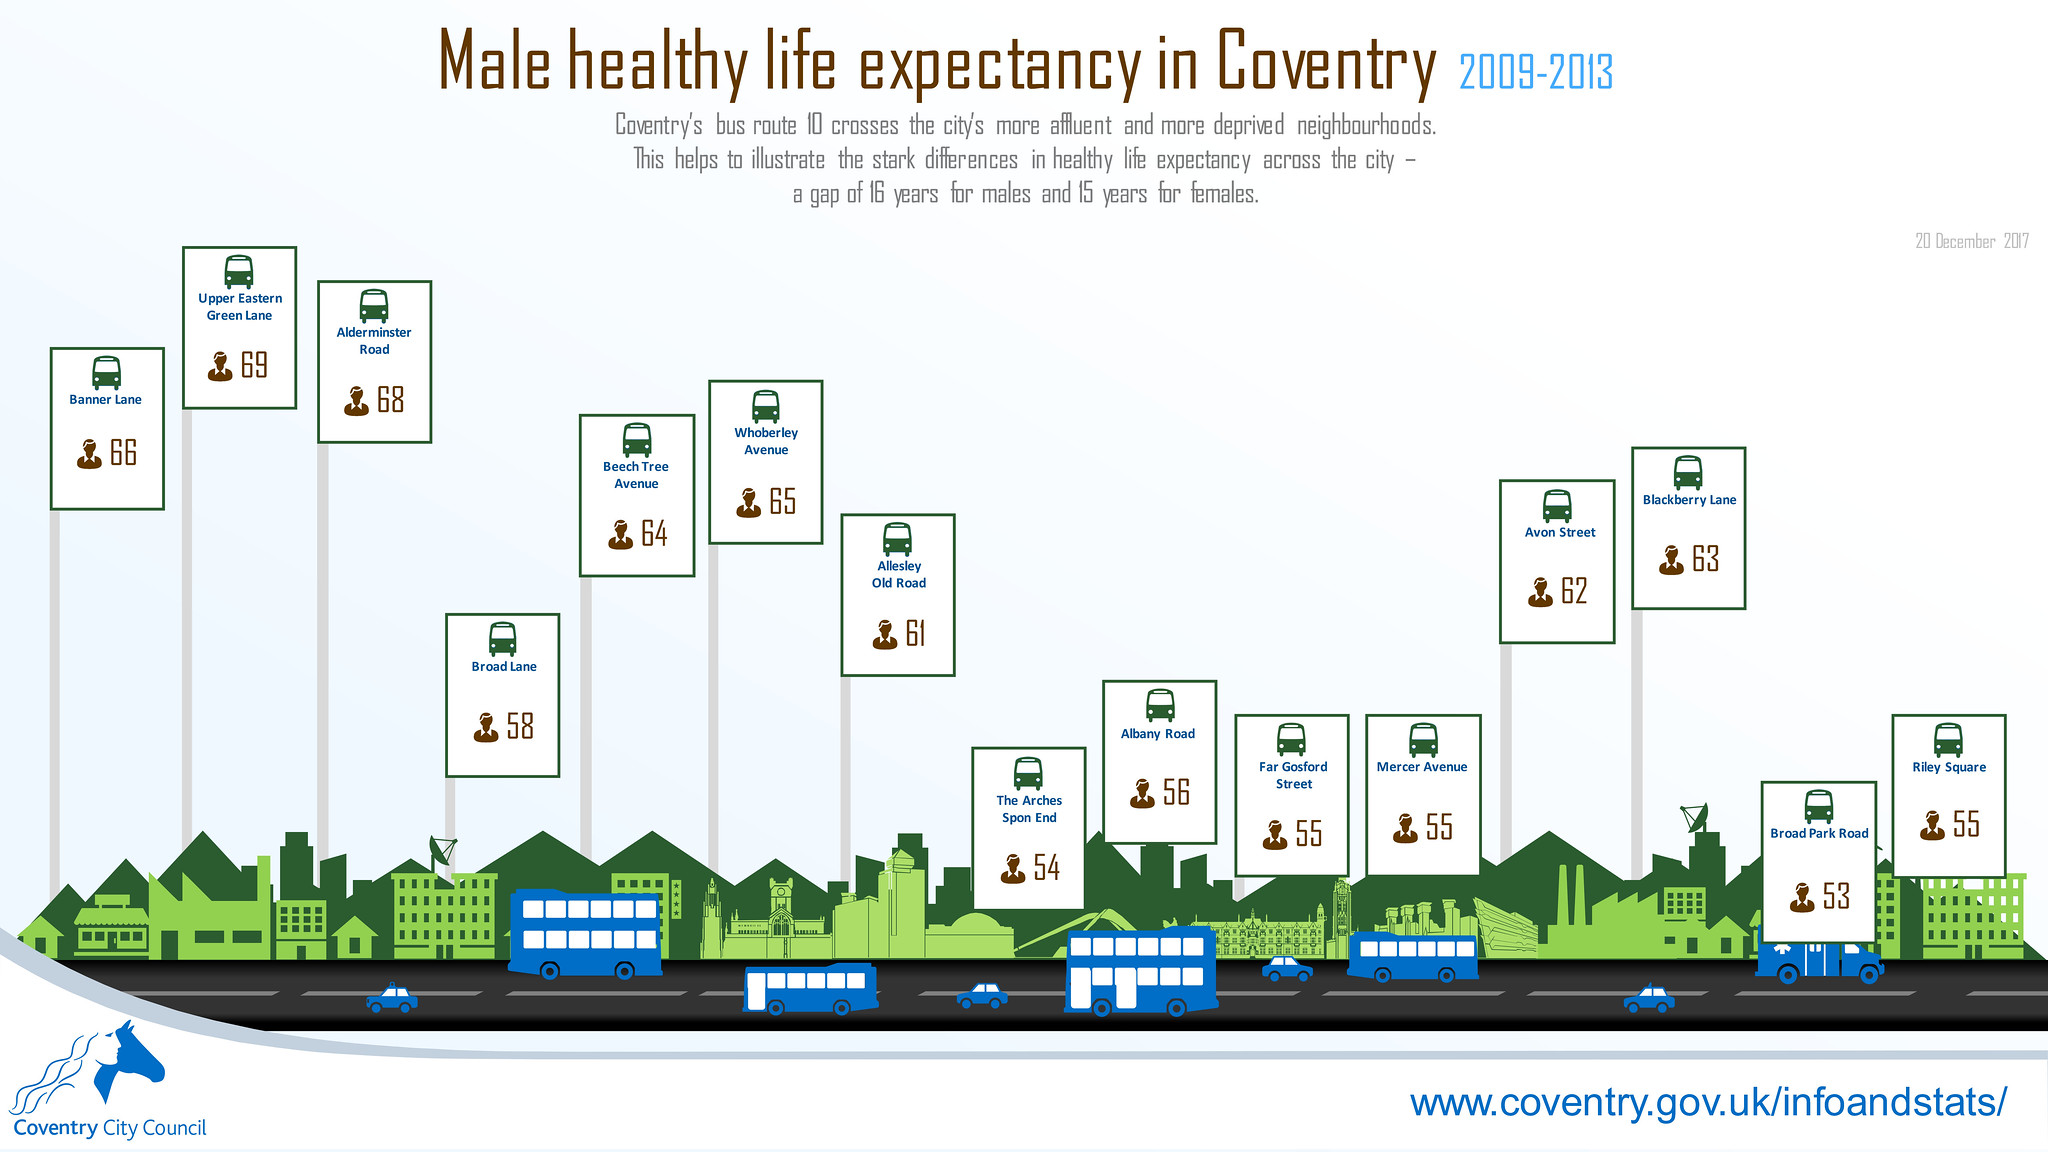 Male healthy life expectancy along Coventry bus route 10 infographic (December 2017)